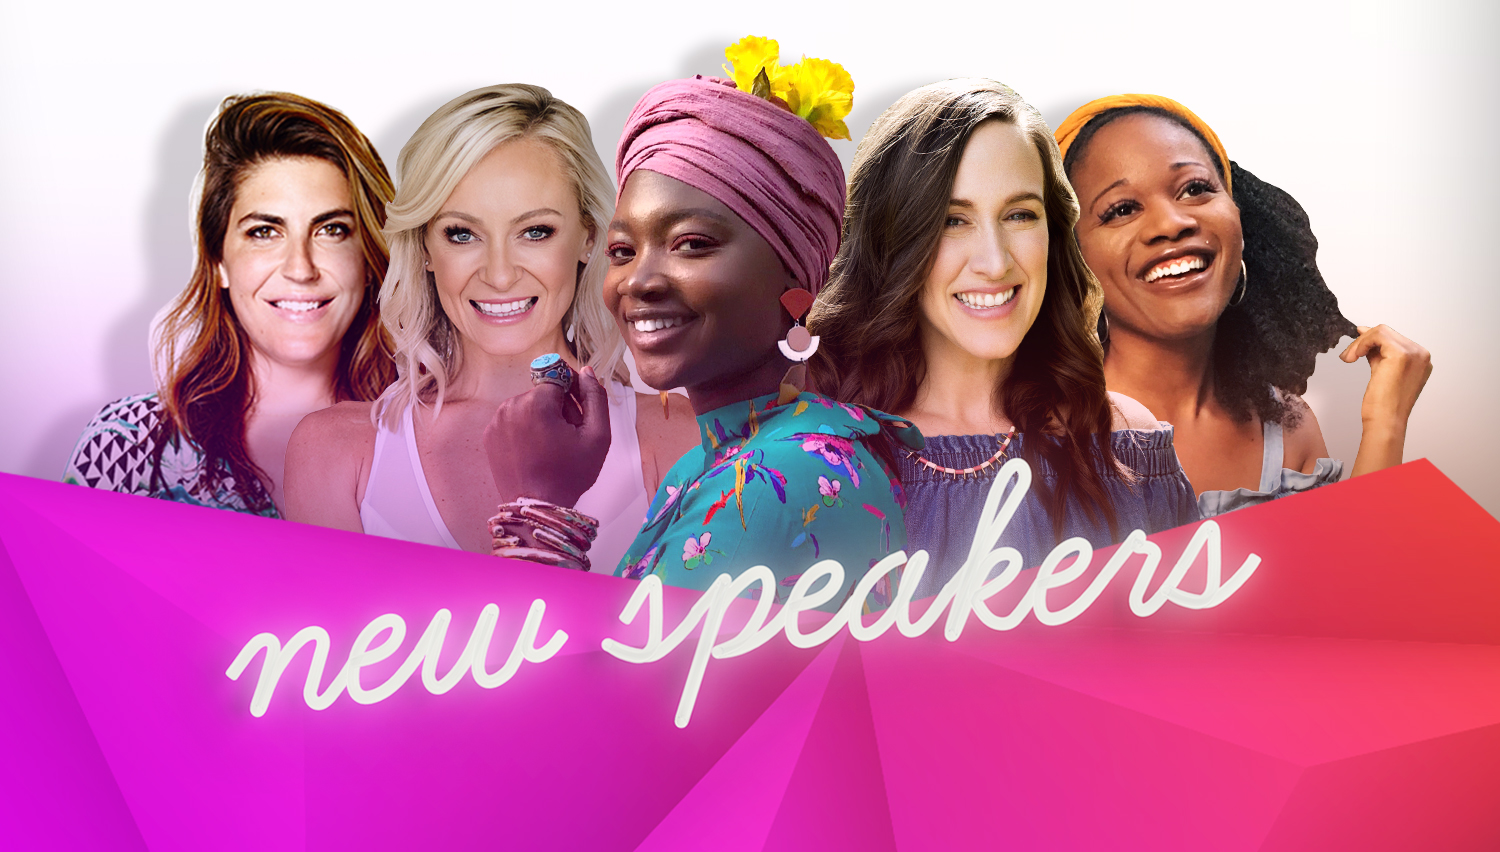 only 75 days to #BlogHer18 - Let's kick off the unofficial start to summer! Save $75 on your ticket to #BlogHer18 Creators Summit in August with code: SUMMER75.